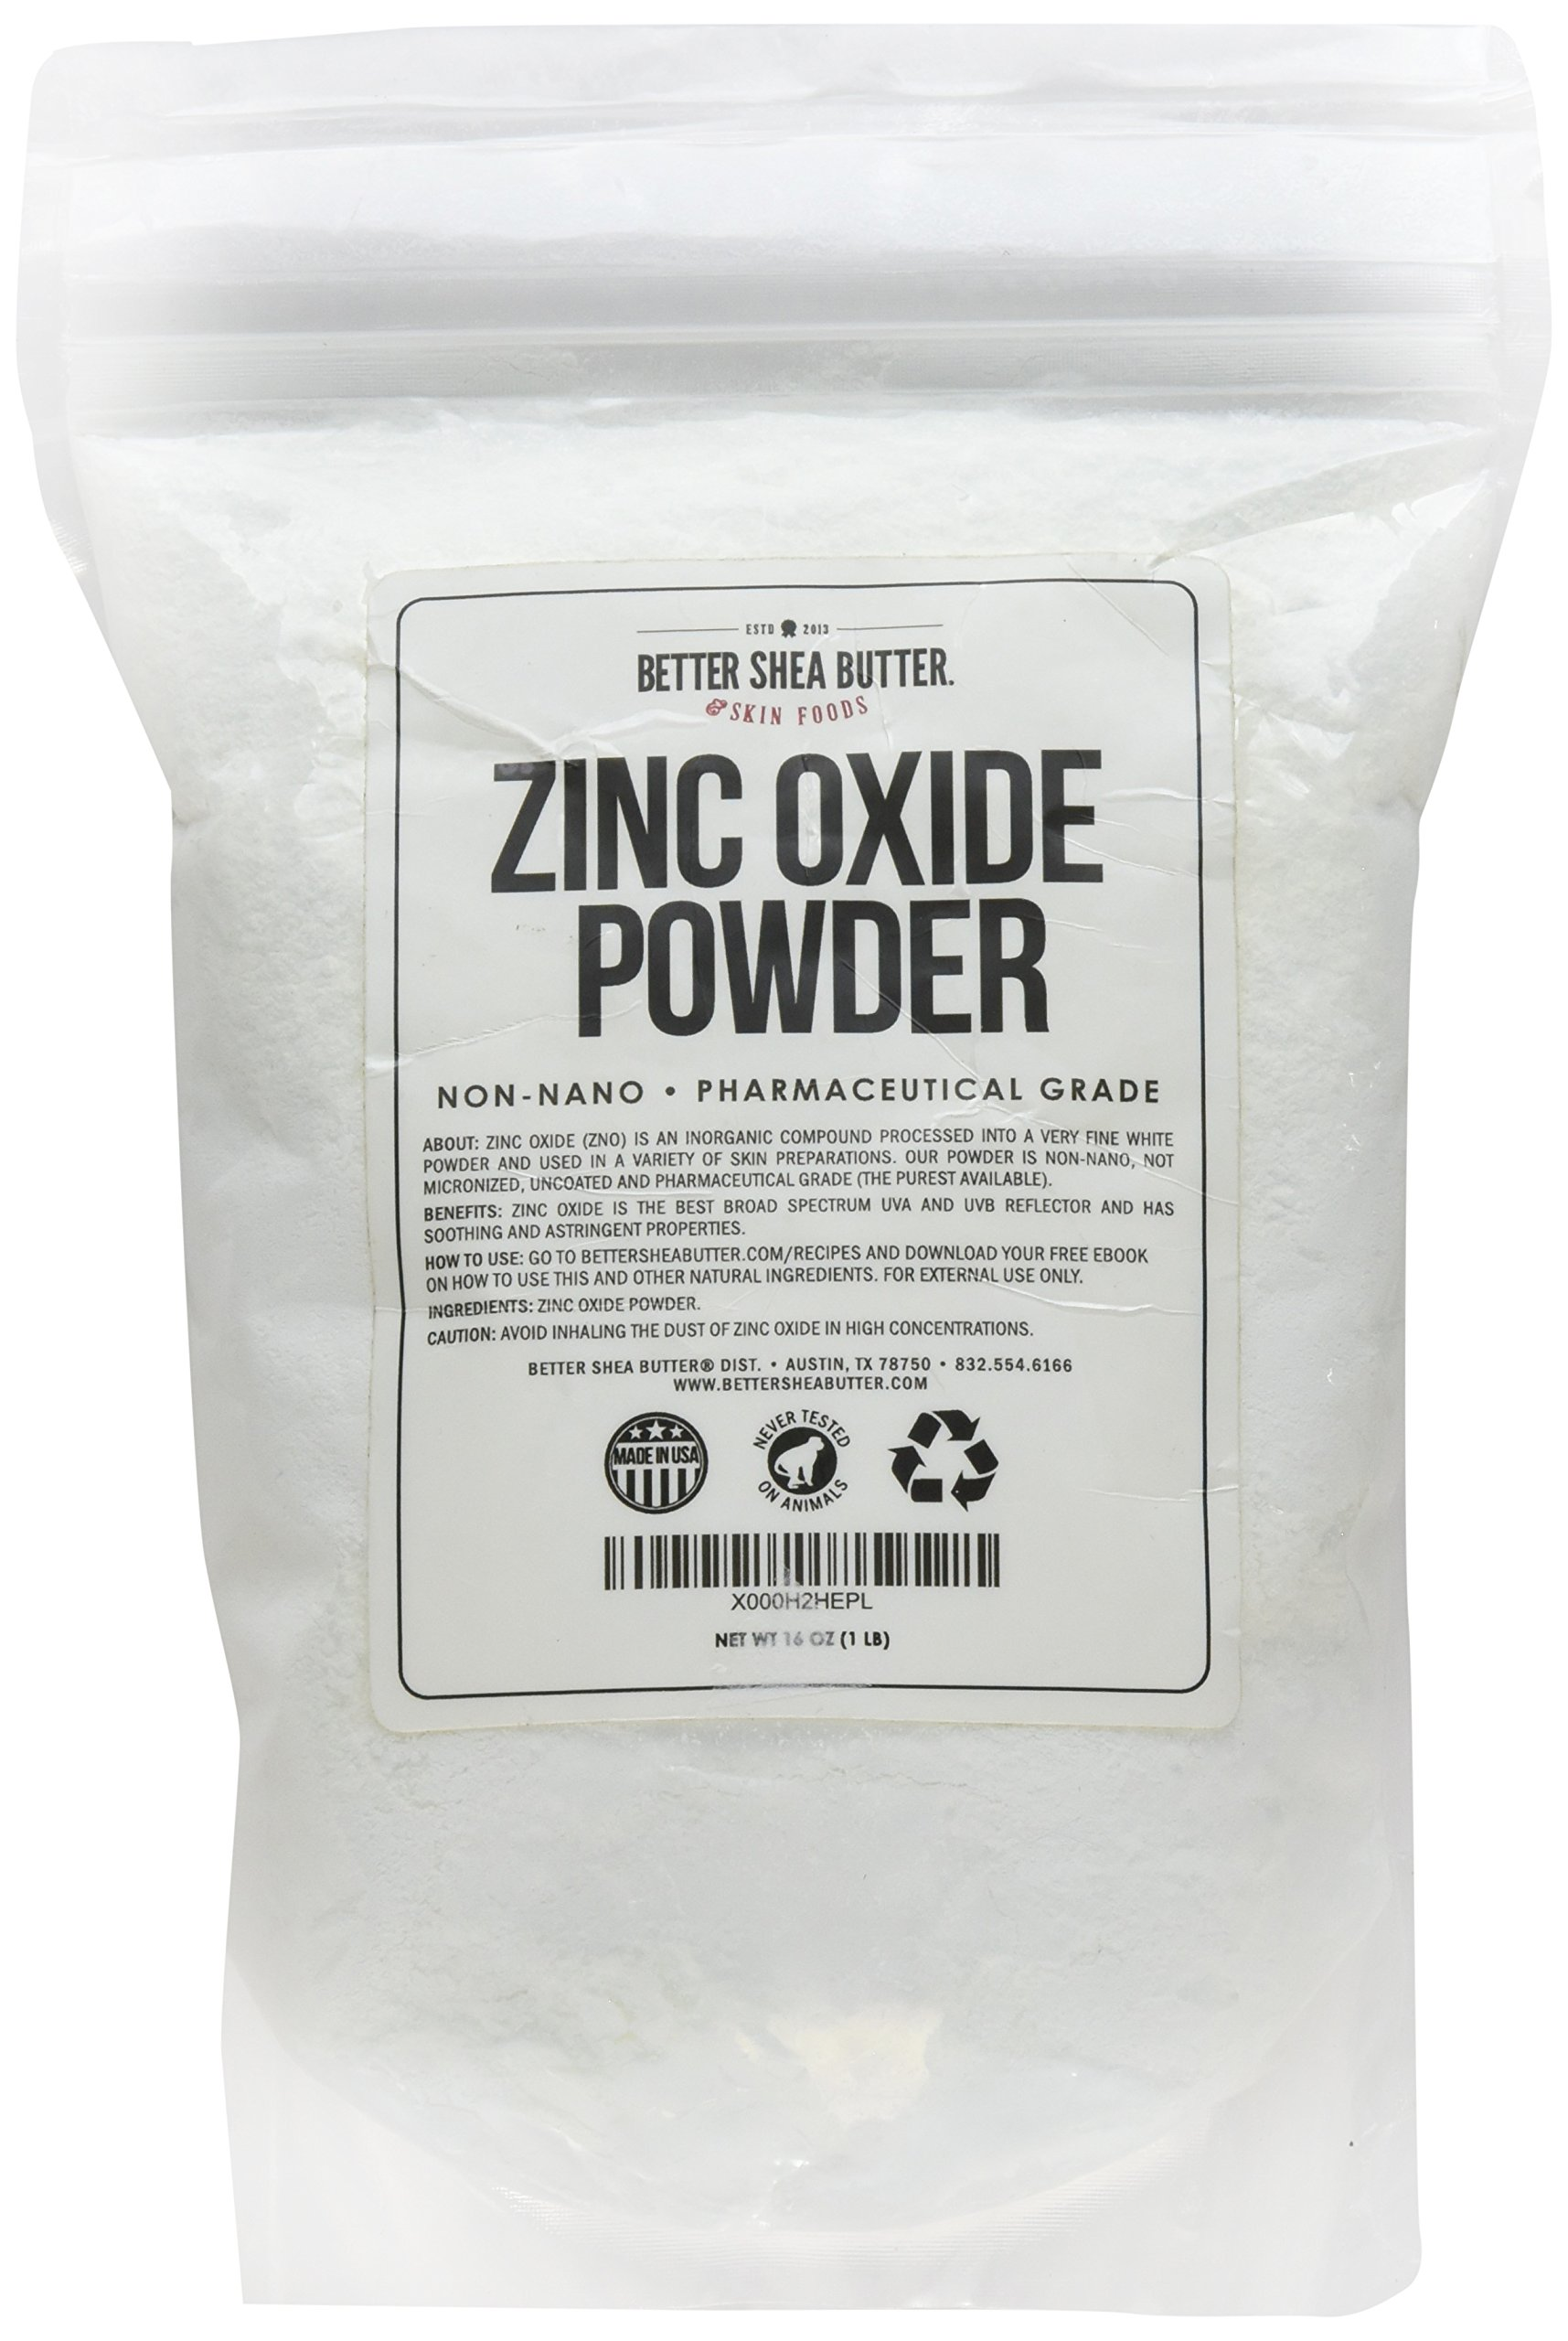 Zinc Oxide Powder - Non-Nano, Uncoated, Pharmaceutical Grade - Use to Make Your Own Acne and Rash Cream and Ointment, Sunscreen, Soap, Lip Balm and More - Sourced & Packaged in the USA - 1 lb (16 oz)